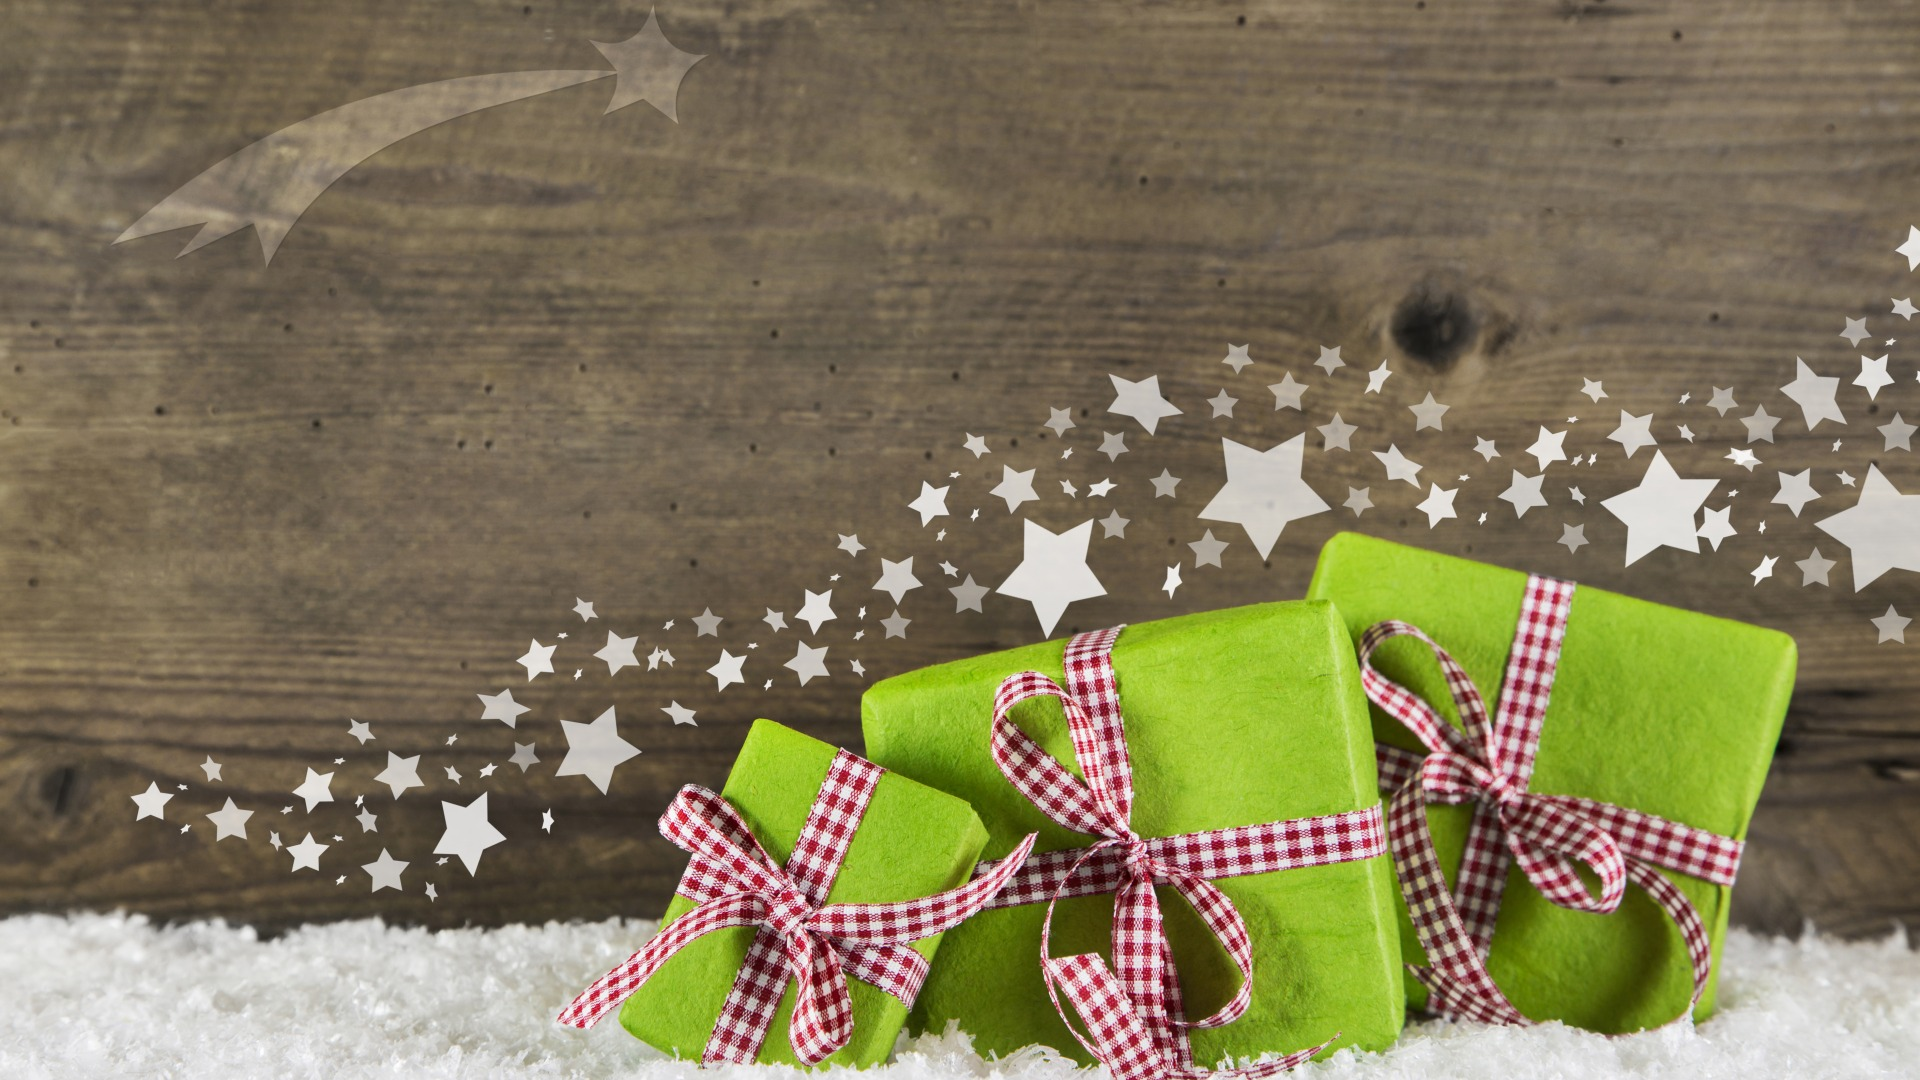 Download-New-Year-Christmas-gifts-Christmas-wood-snow-decoration-gifts-section-wallpaper-wp3404971